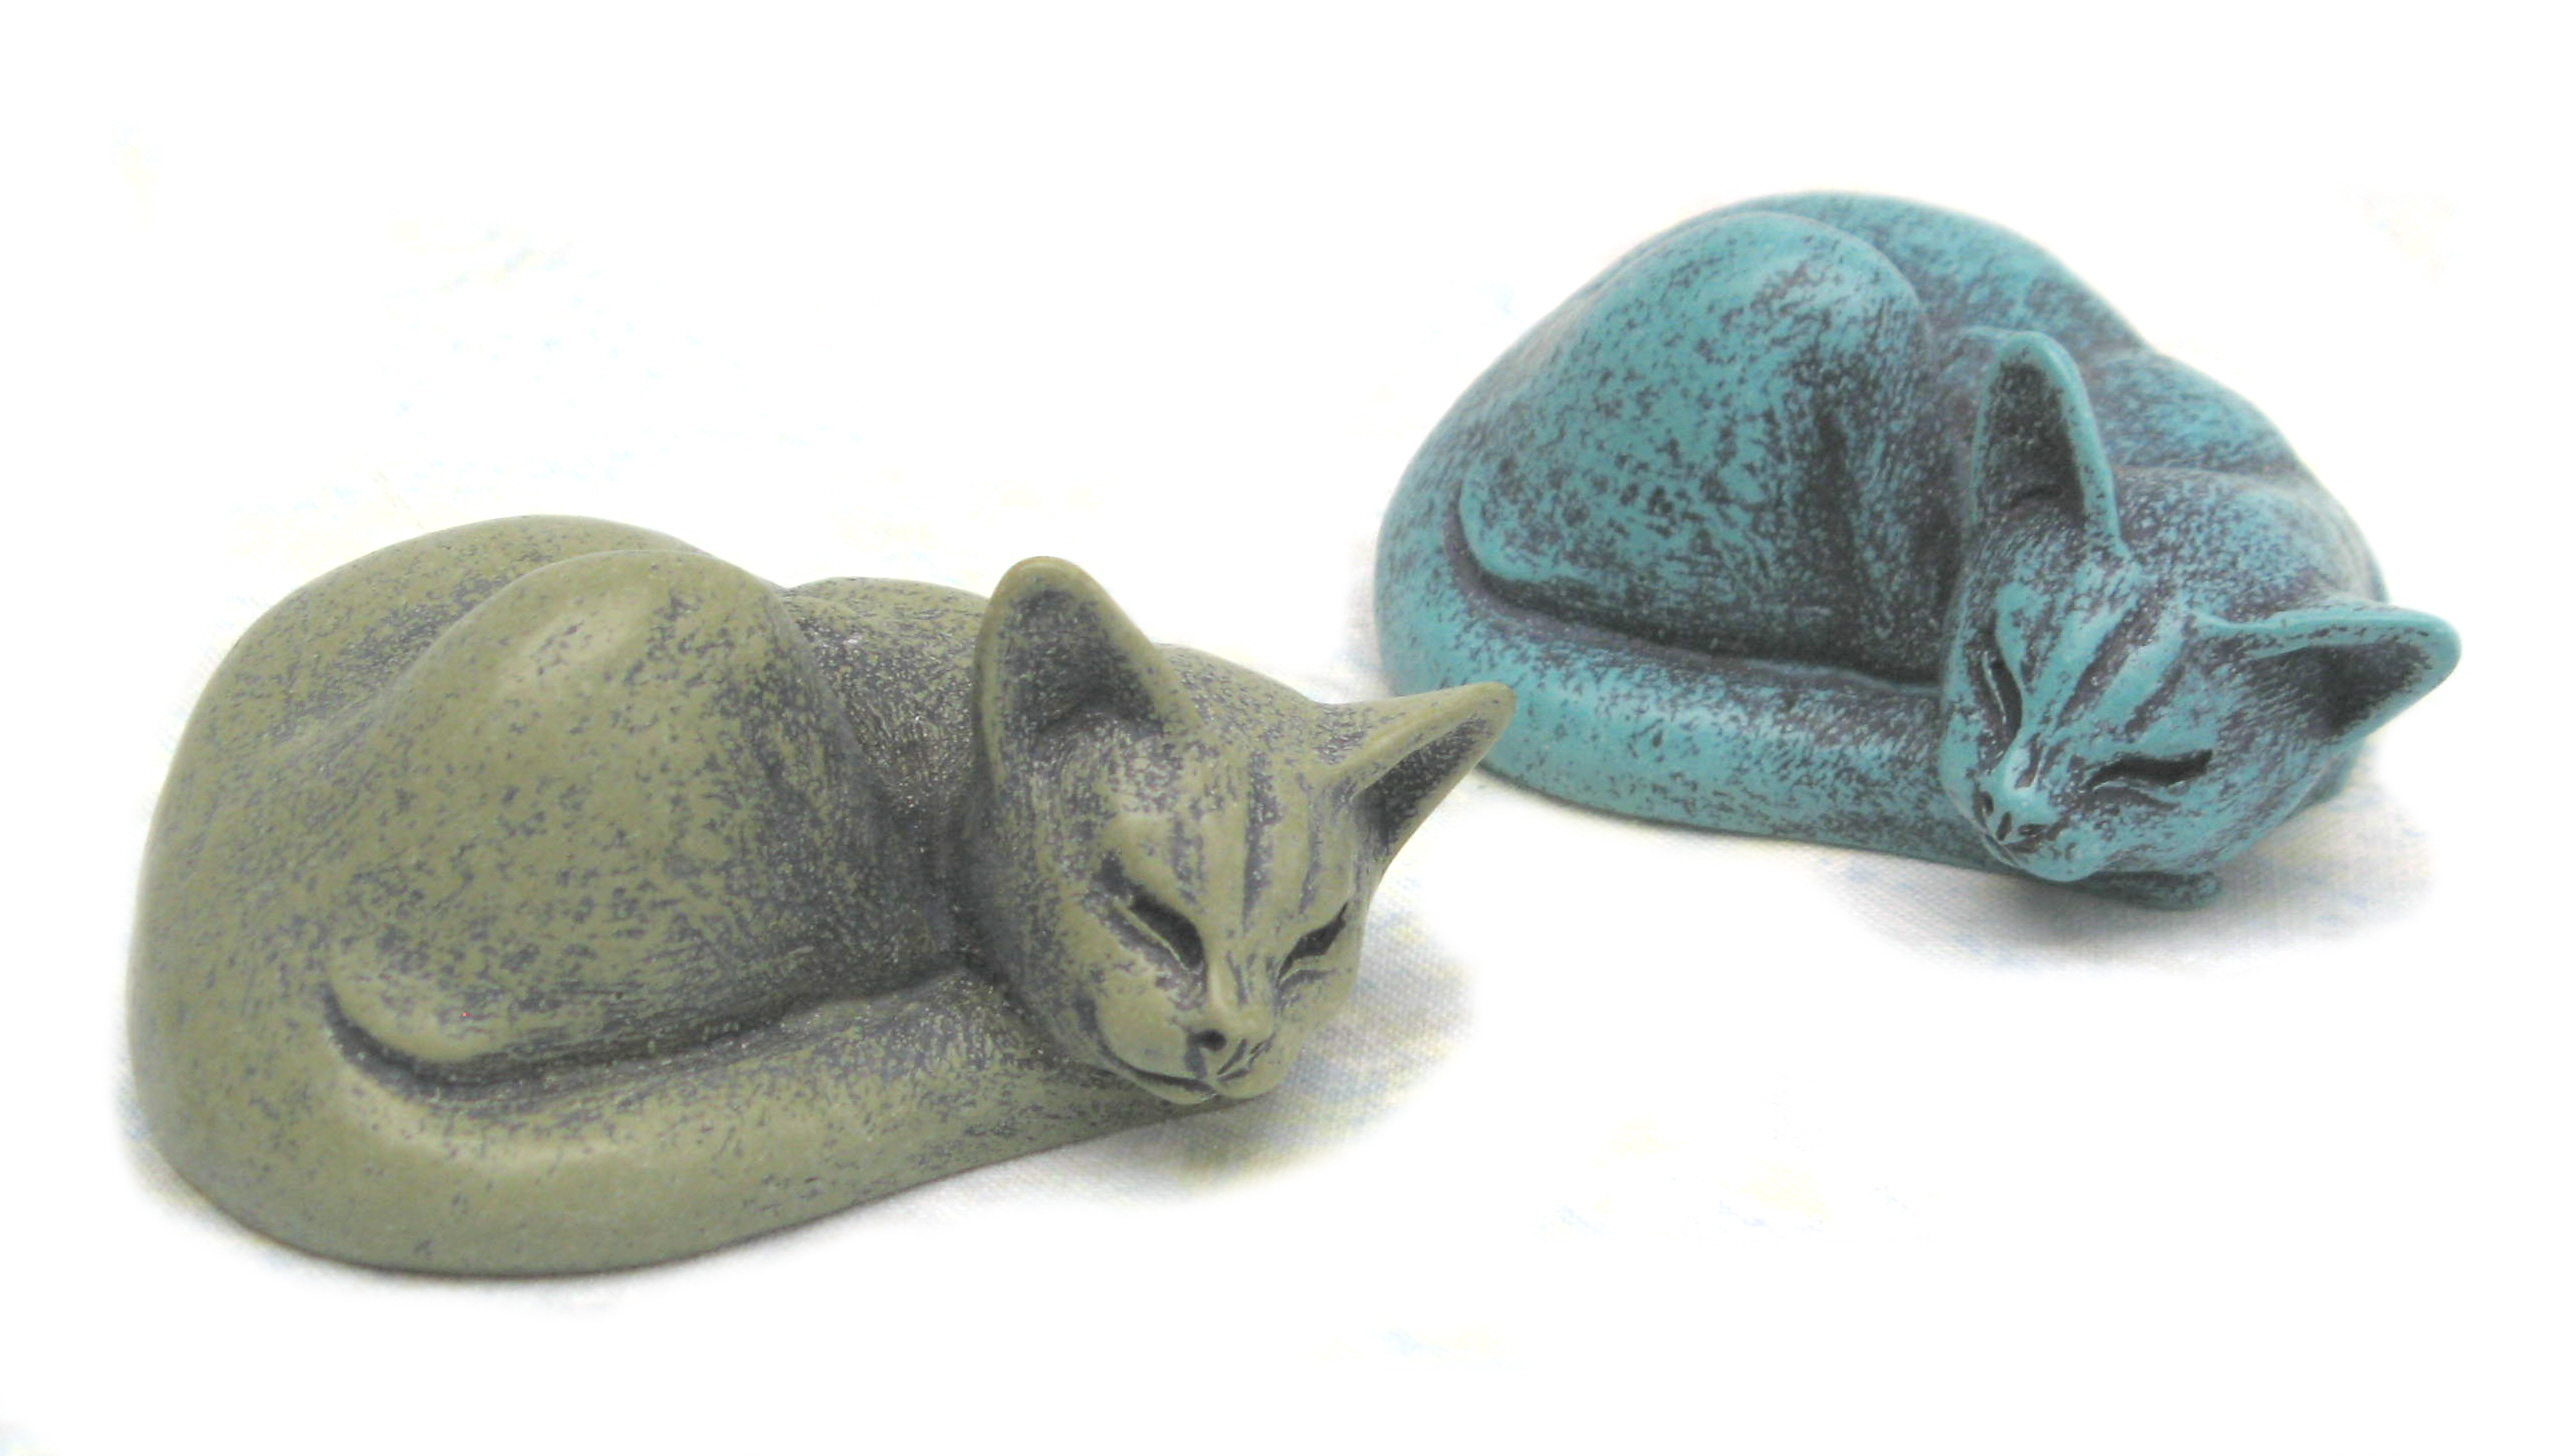 small curled cats in green & turquoise portland stone resin